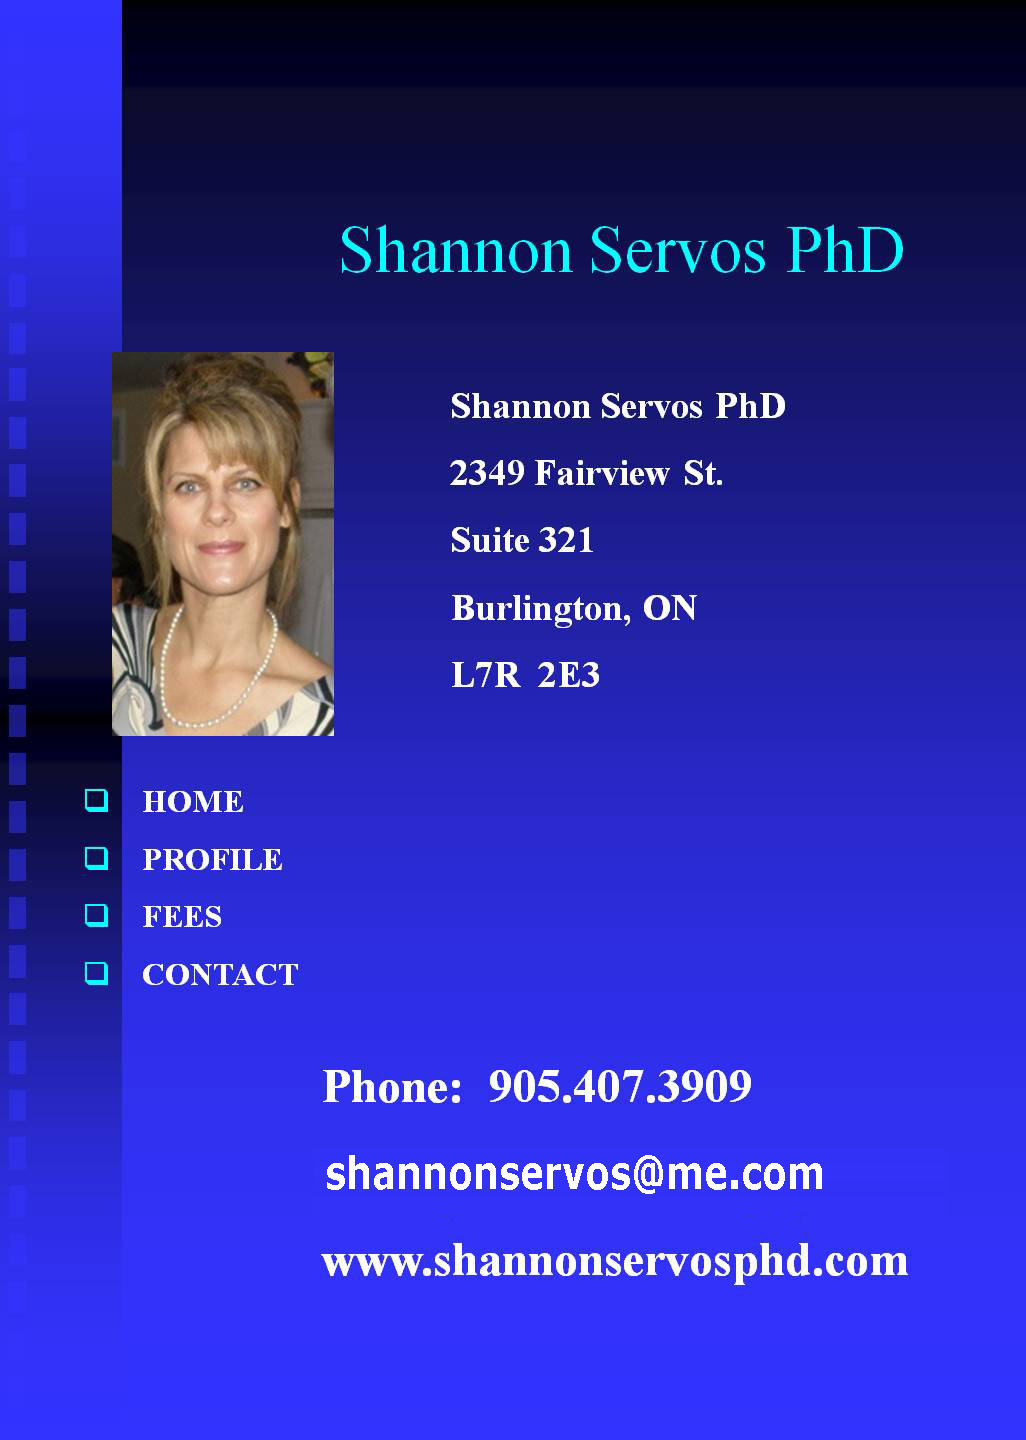 Shannon Servos PhD in Psychotherapy,  specializing in Individual, Family and Group Therapy, Counseling Services and Consultations. Burlington, Ontario, Canada, marital family conflict, adolescent counselling, depression, anxiety, anger, seasonal affective disorder, eating disorders, stress, job loss, phone, address, e-mail, location, www.shannonservosphd.com-contact.html